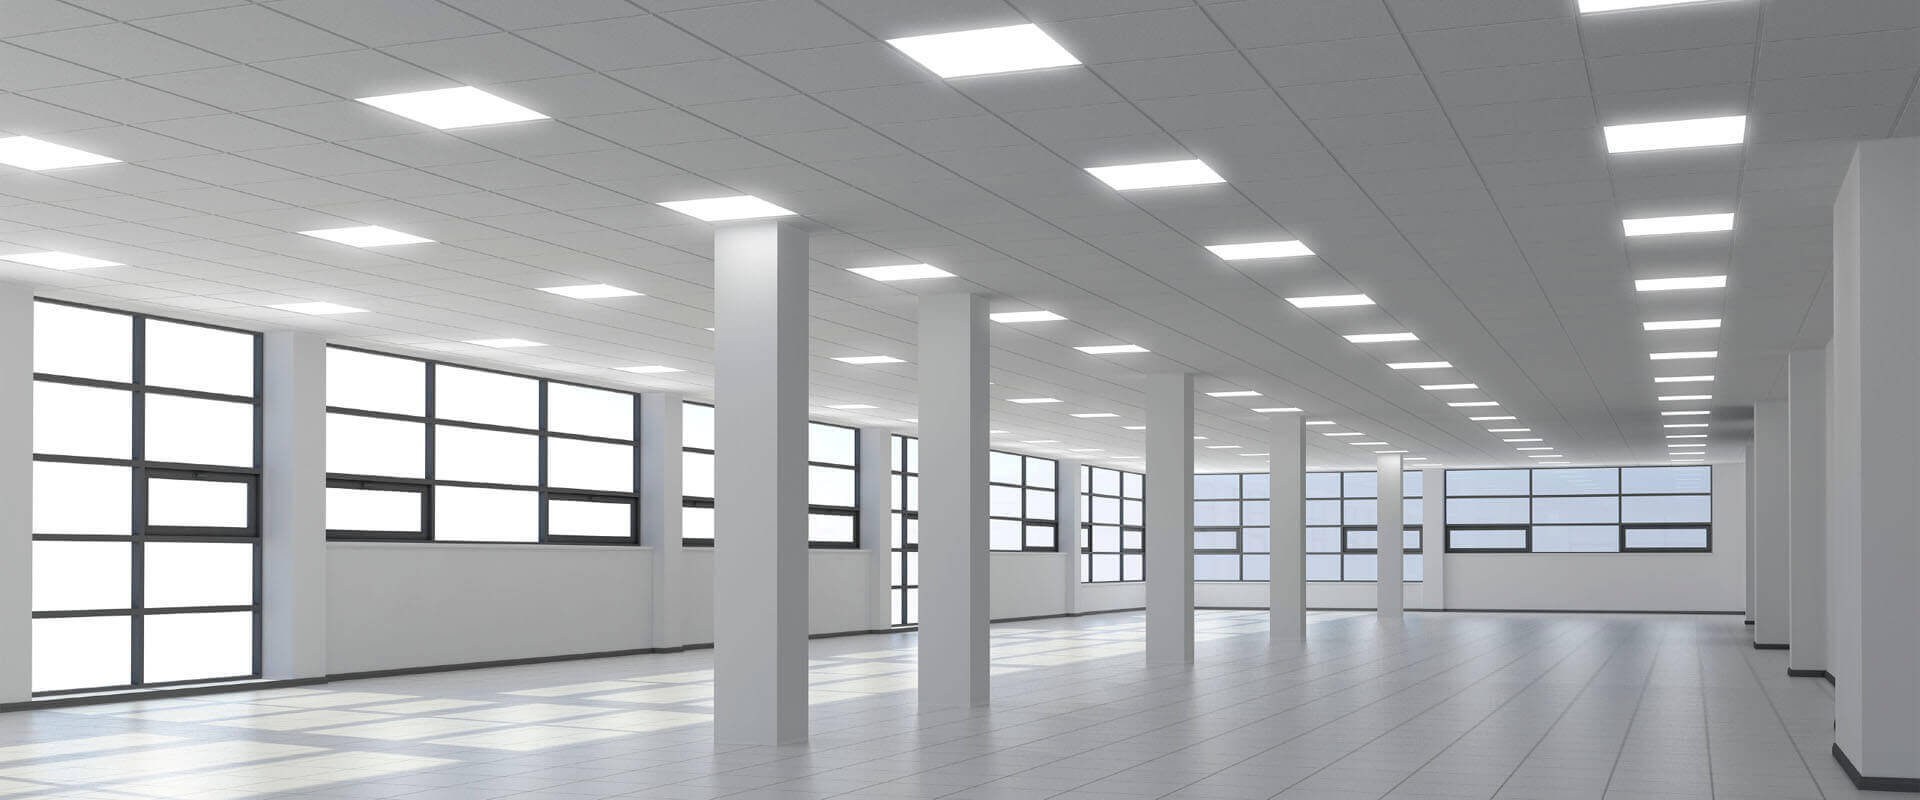 LED lighting services in Epping